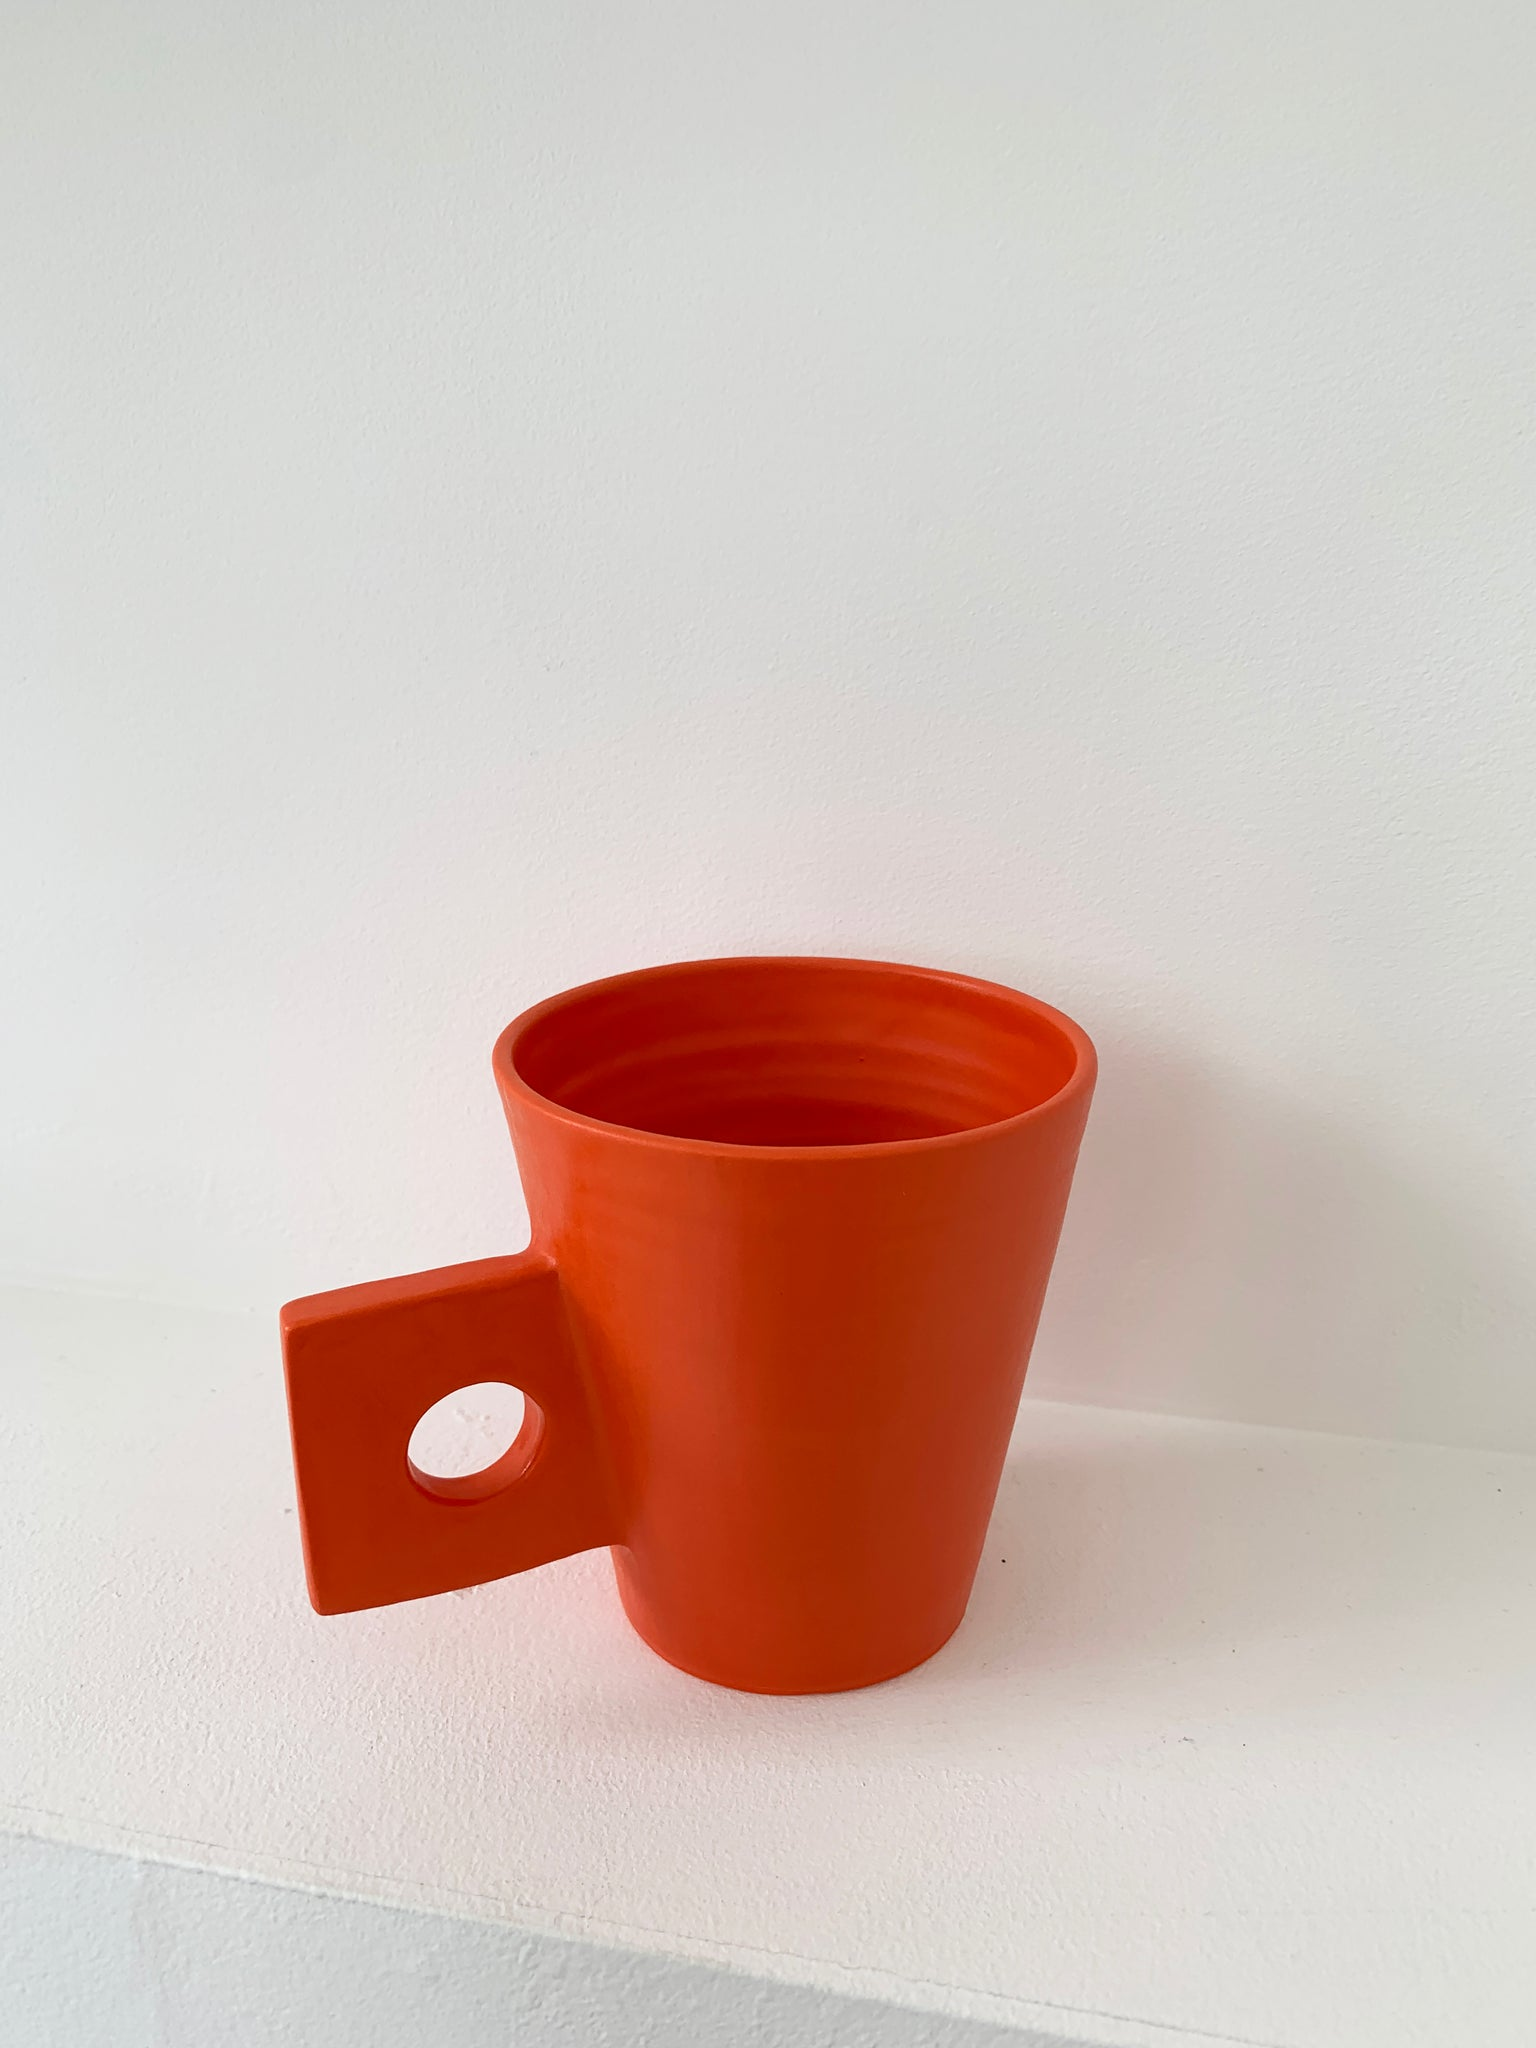 Handmade Ceramic Square Handle Mug - Orange, White, Lavender, Black